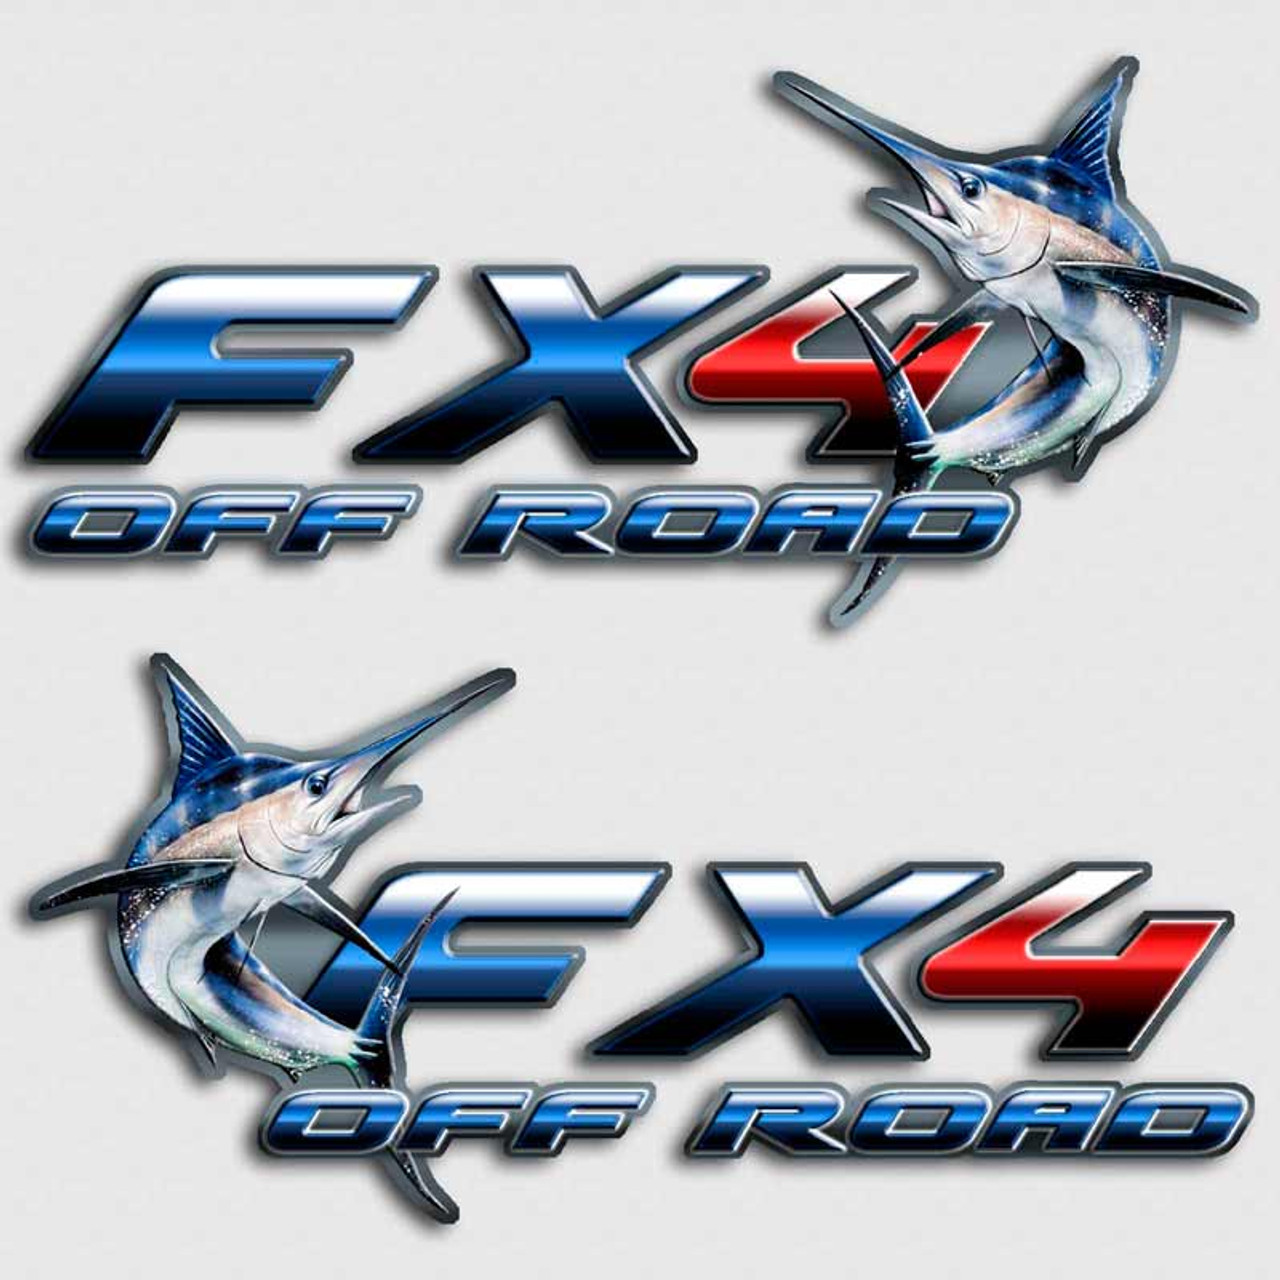 Blue Marlin FX Truck Decals Sport Fishing Charter Stickers - Fishing decals for trucks